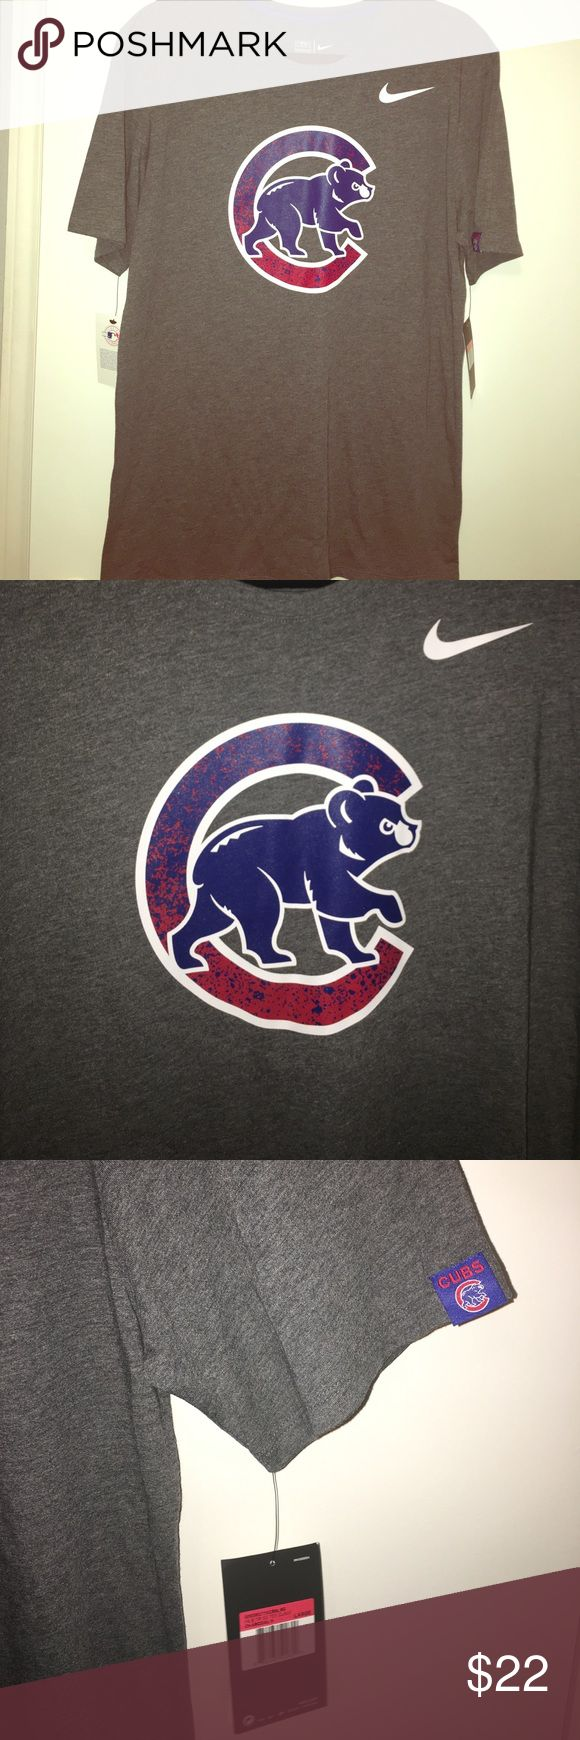 Men's Nike Chicago Cubs Tri-Blend T-Shirt Nike Men's Large Chicago Cubs tri-blend athletic cut t-shirt. Features the Cubs logo and other detail designs. Brand new with tags. Perfect condition! Nike Shirts Tees - Short Sleeve